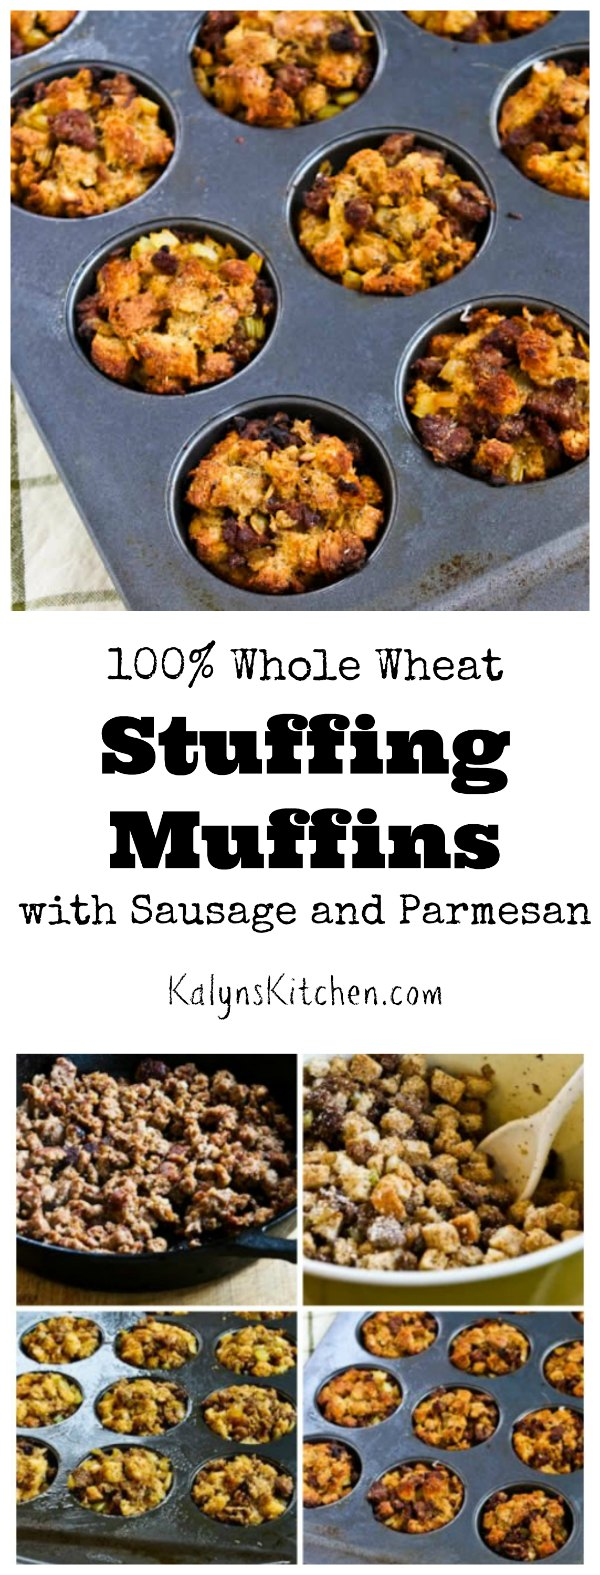 Kalyn's Kitchen®: 100% Whole Wheat Stuffing Muffins with Sausage and ...